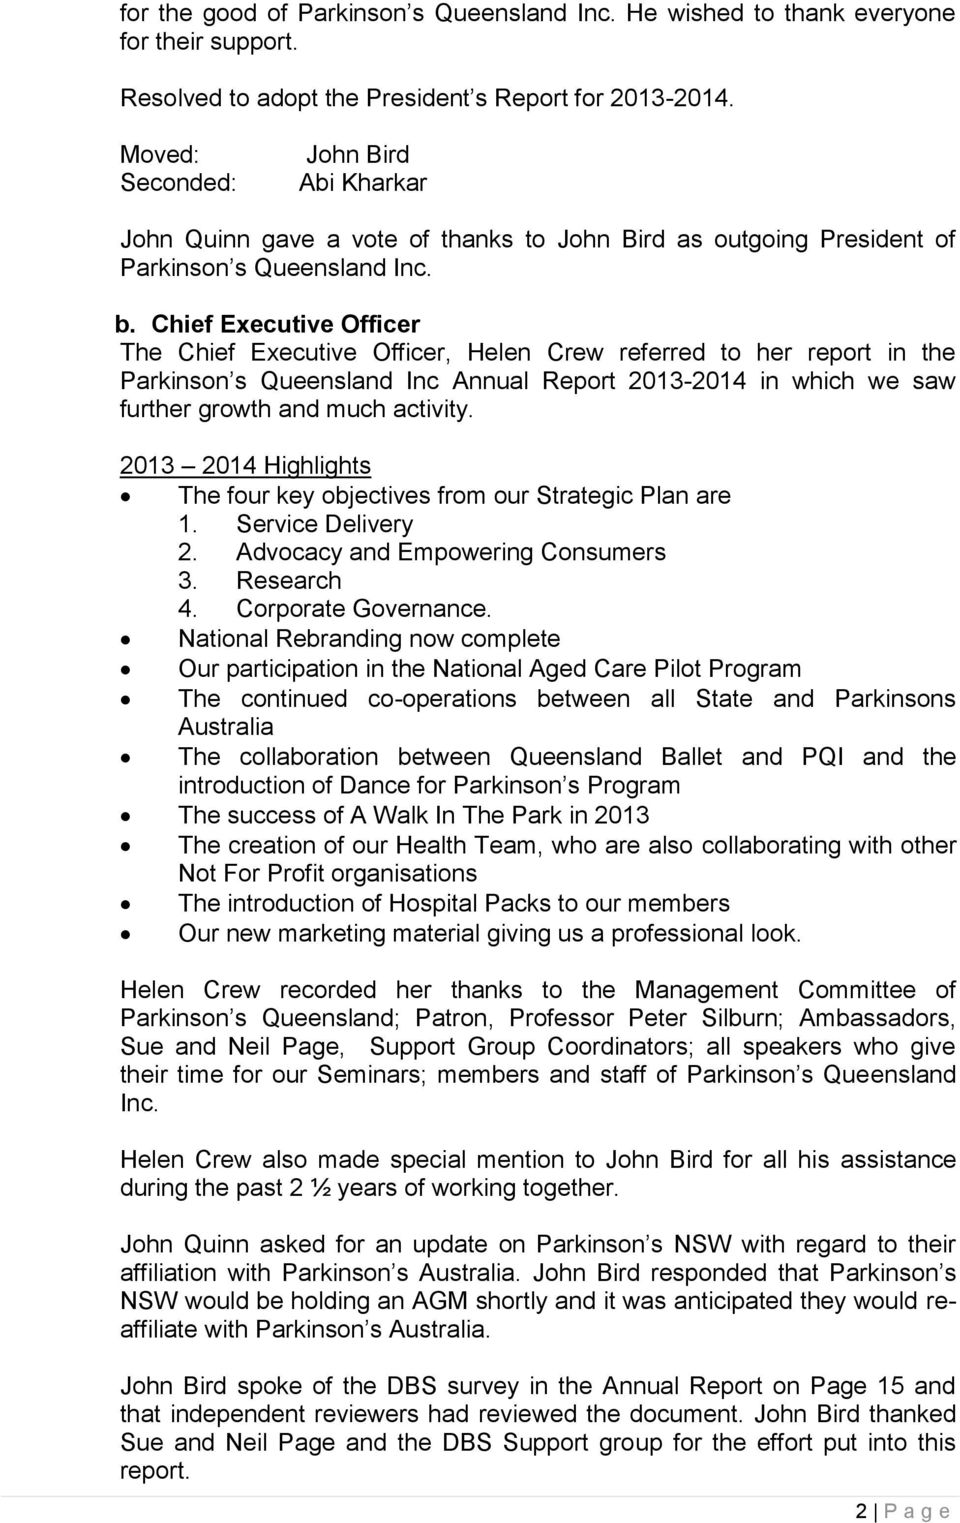 Chief Executive Officer The Chief Executive Officer, Helen Crew referred to her report in the Parkinson s Queensland Inc Annual Report 2013-2014 in which we saw further growth and much activity.